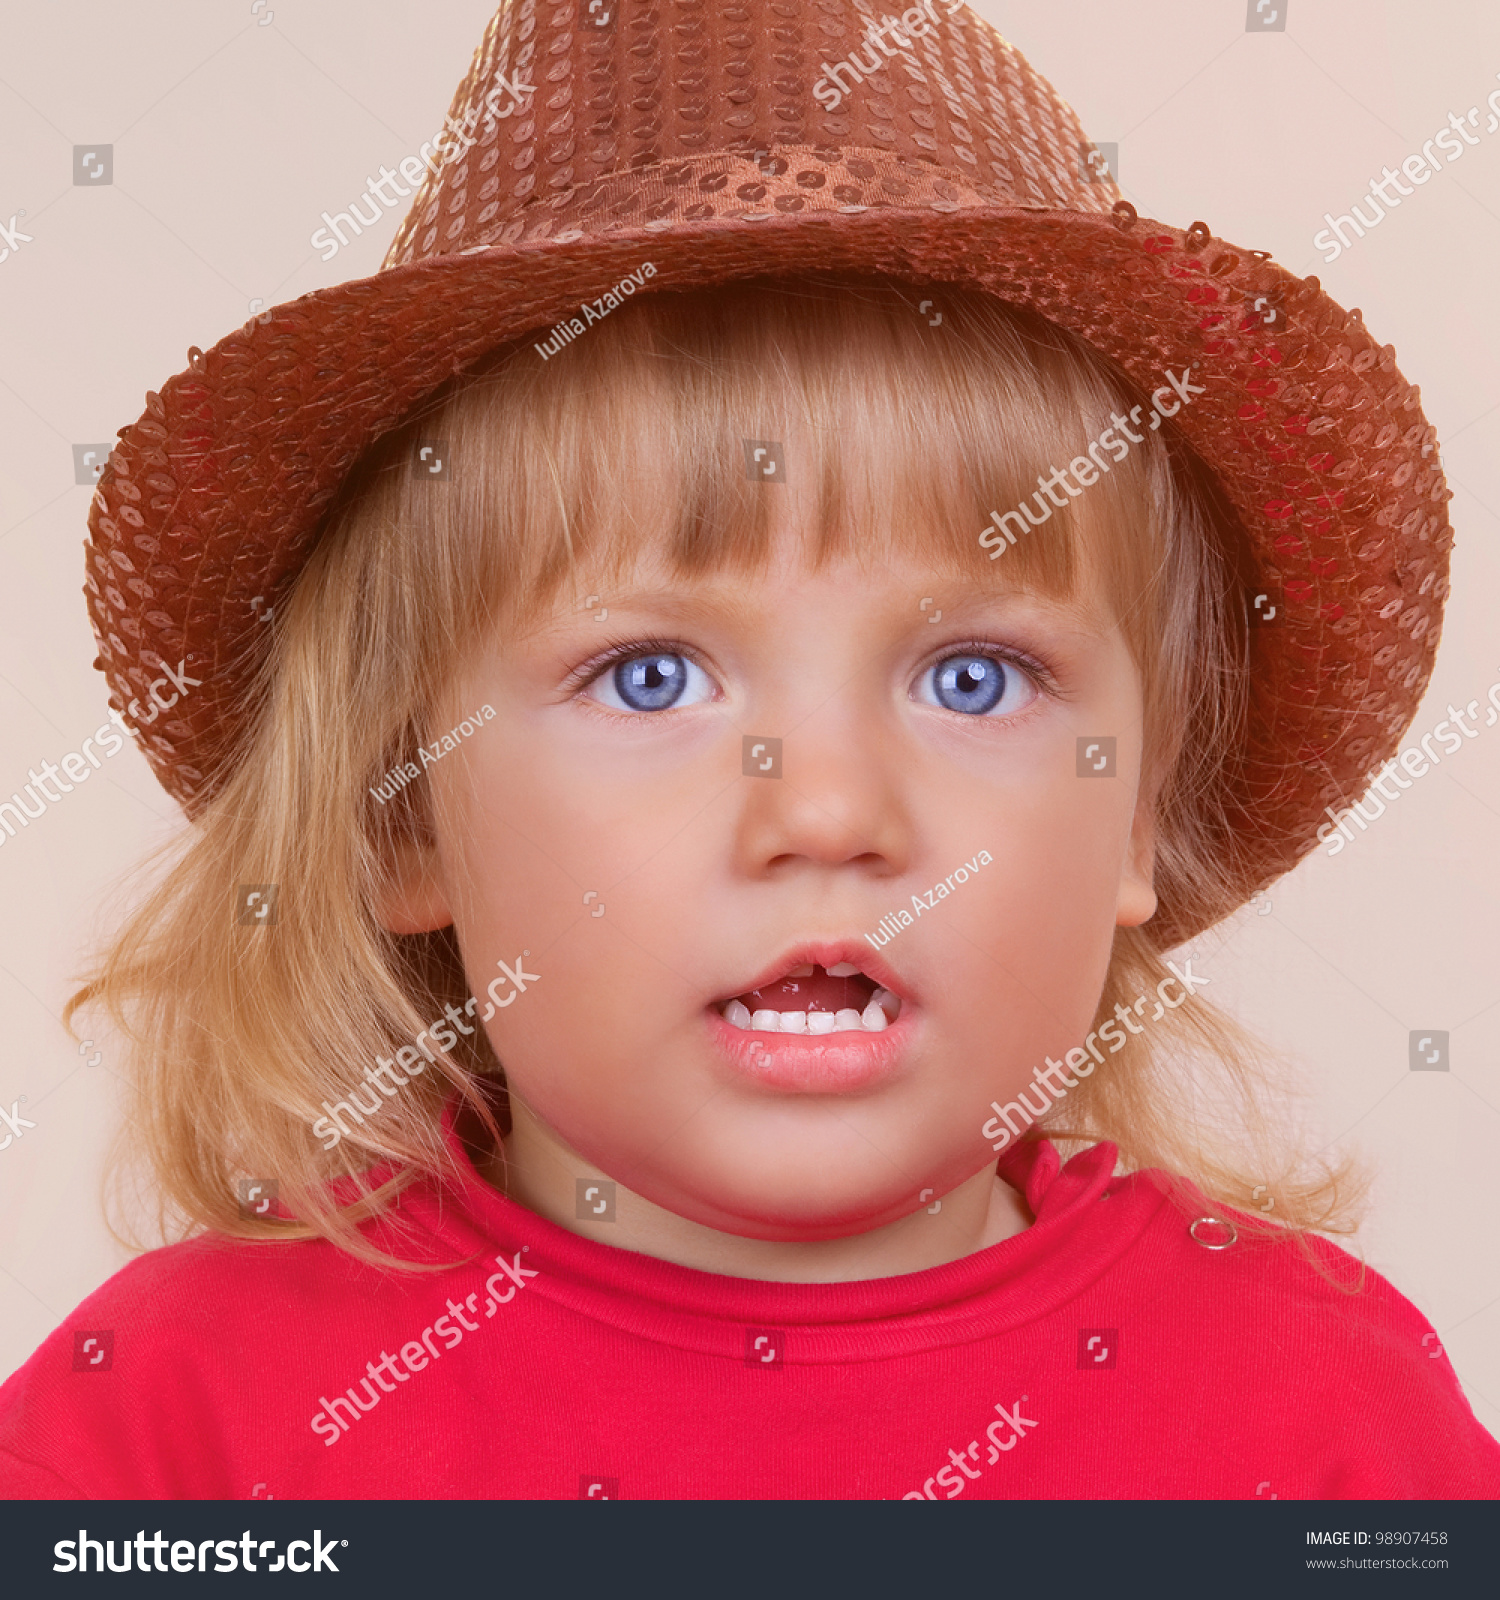 small baby girl piercing blue eyes stock photo (edit now) 98907458